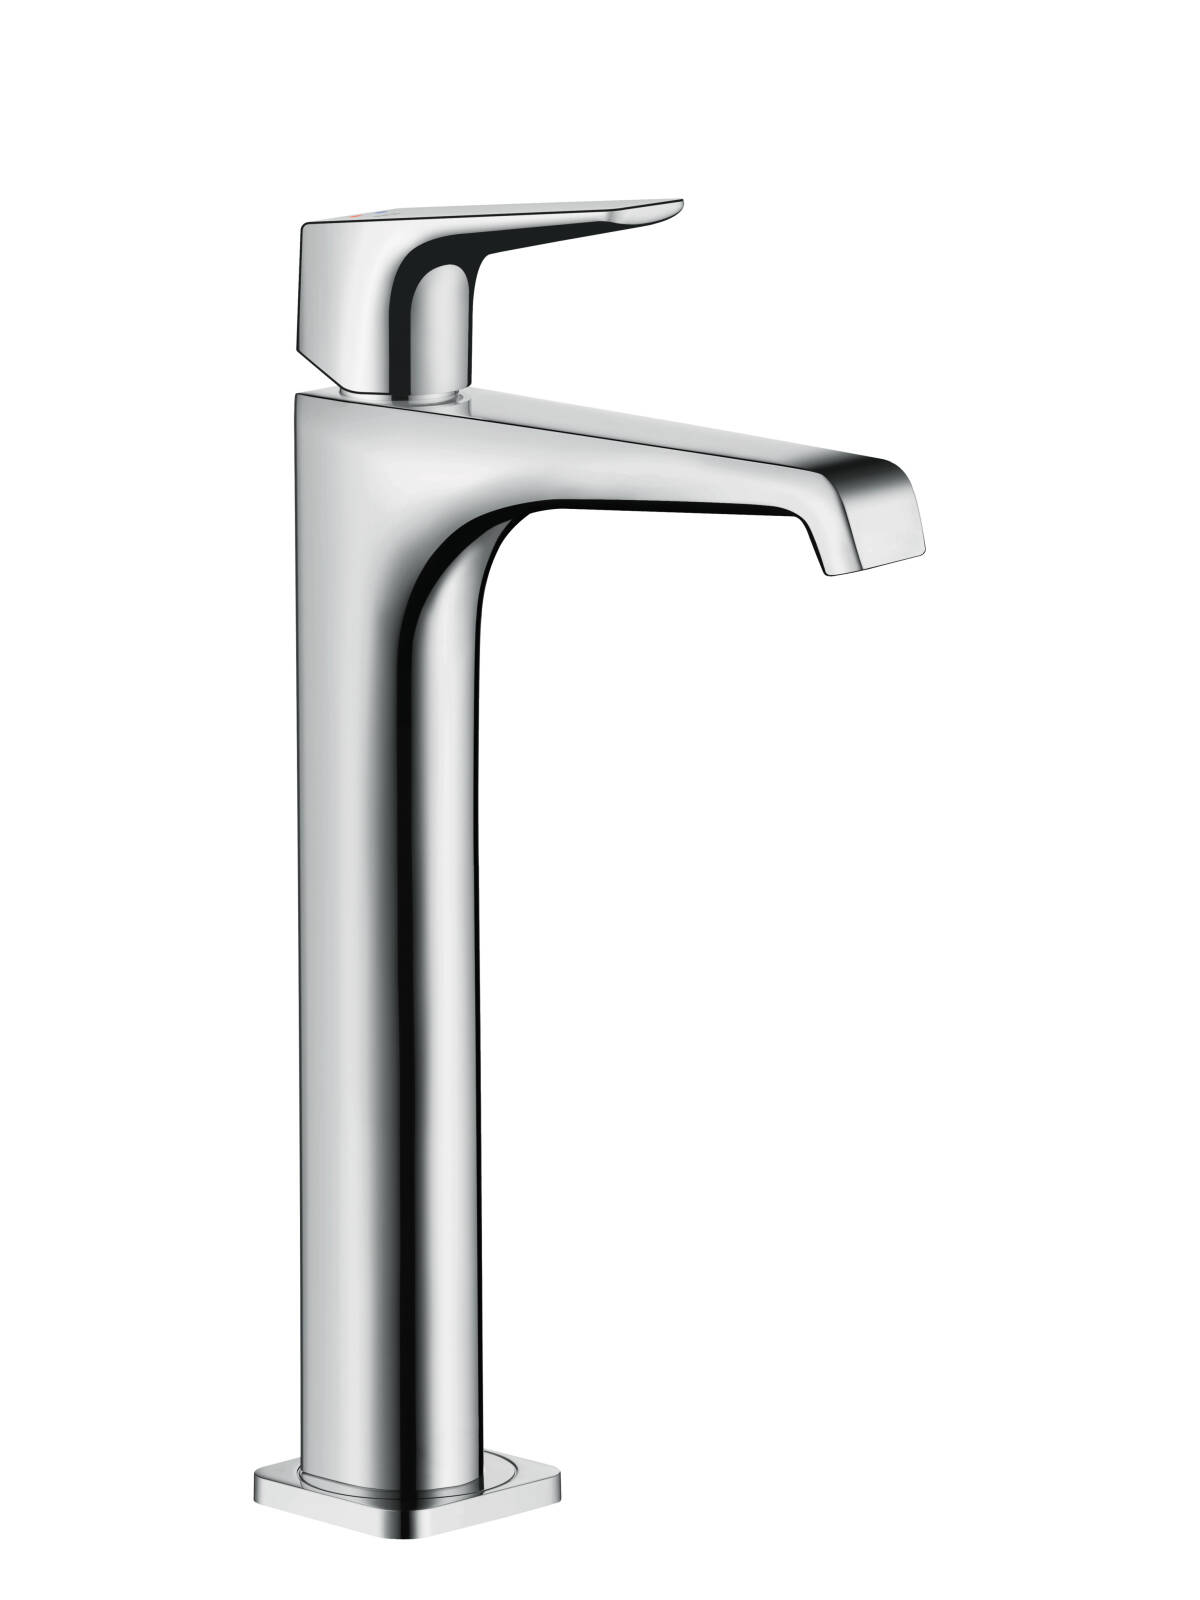 Single lever basin mixer 250 with lever handle for washbowls with waste set, Chrome, 36113000